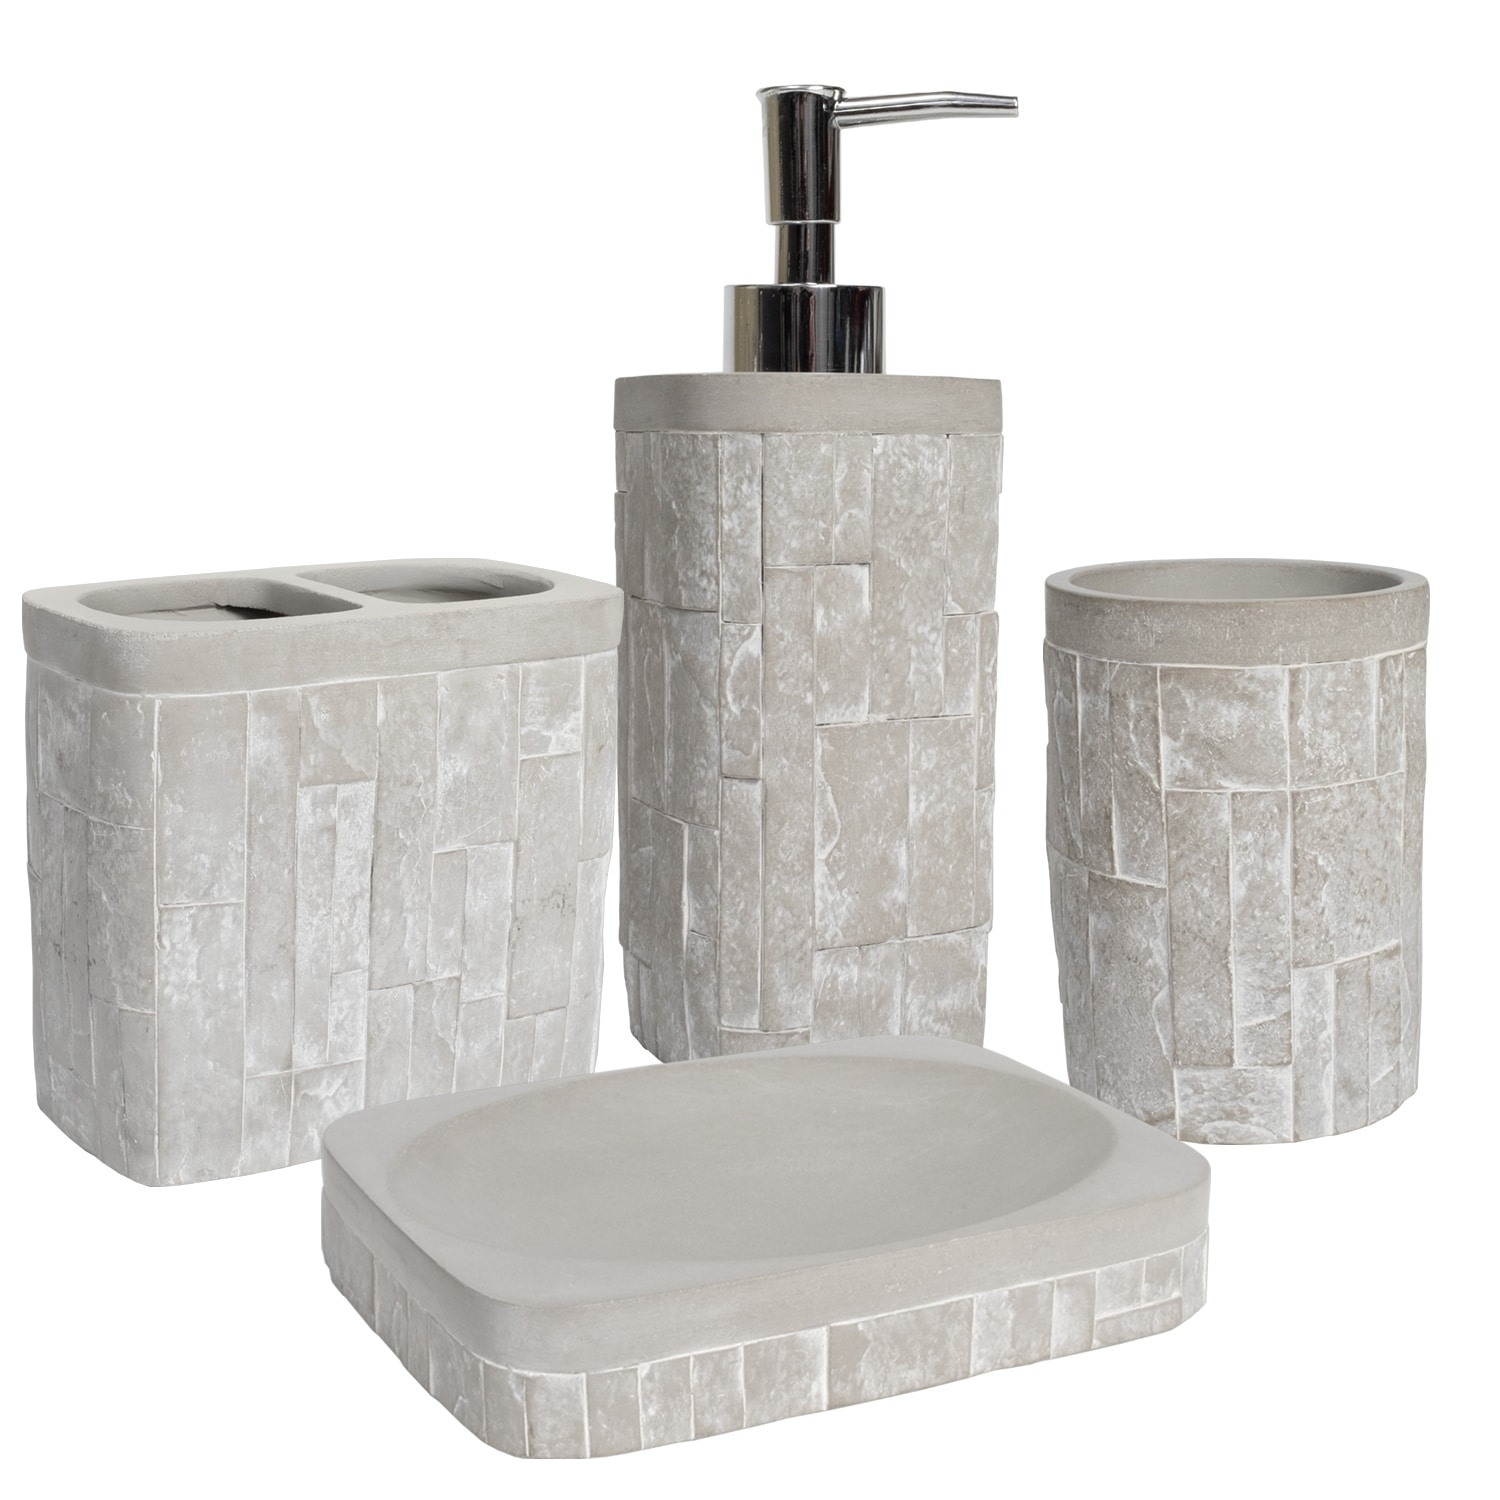 Avalon Handcrafted Bathroom Accessories